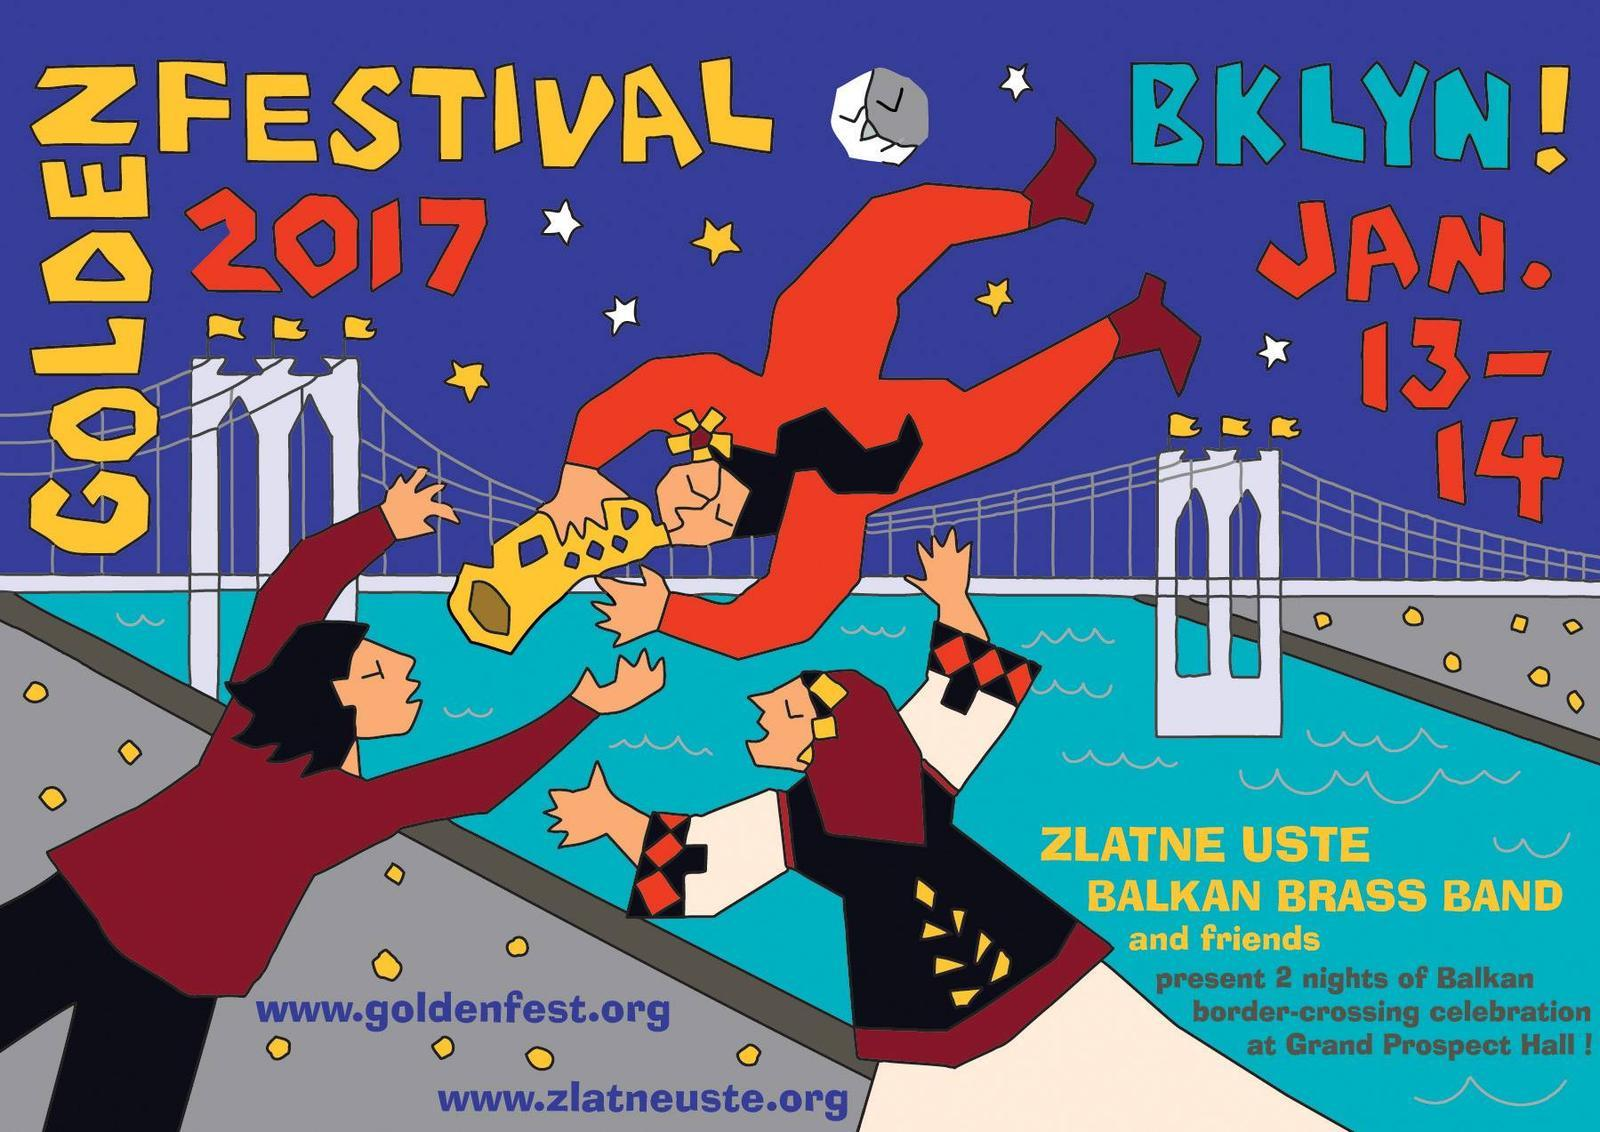 The Zlatne Uste Golden Festival 2017